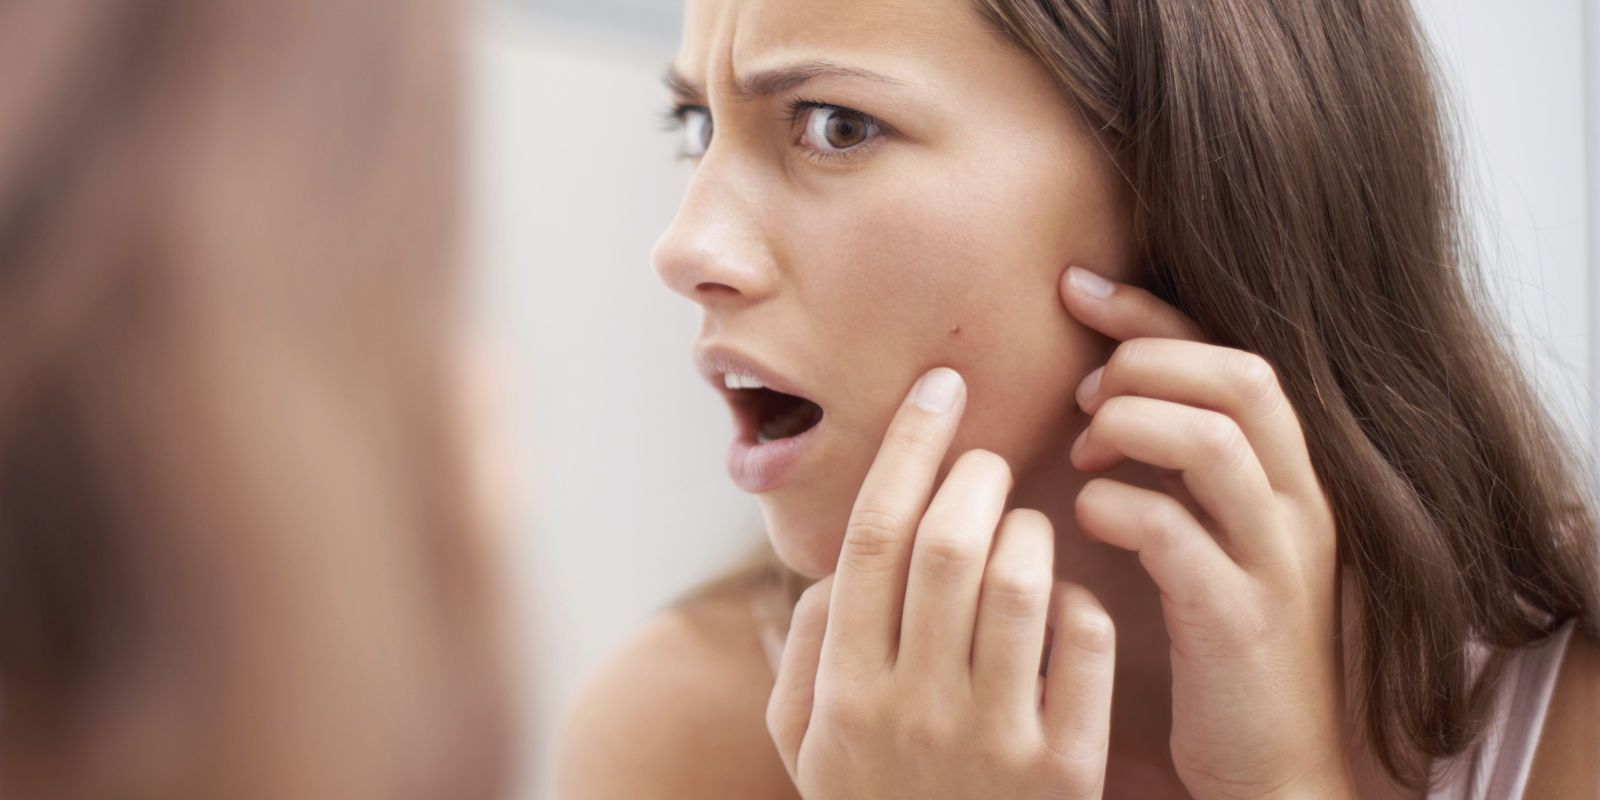 Treat and prevent these painful underground pimples uaka cystic acne